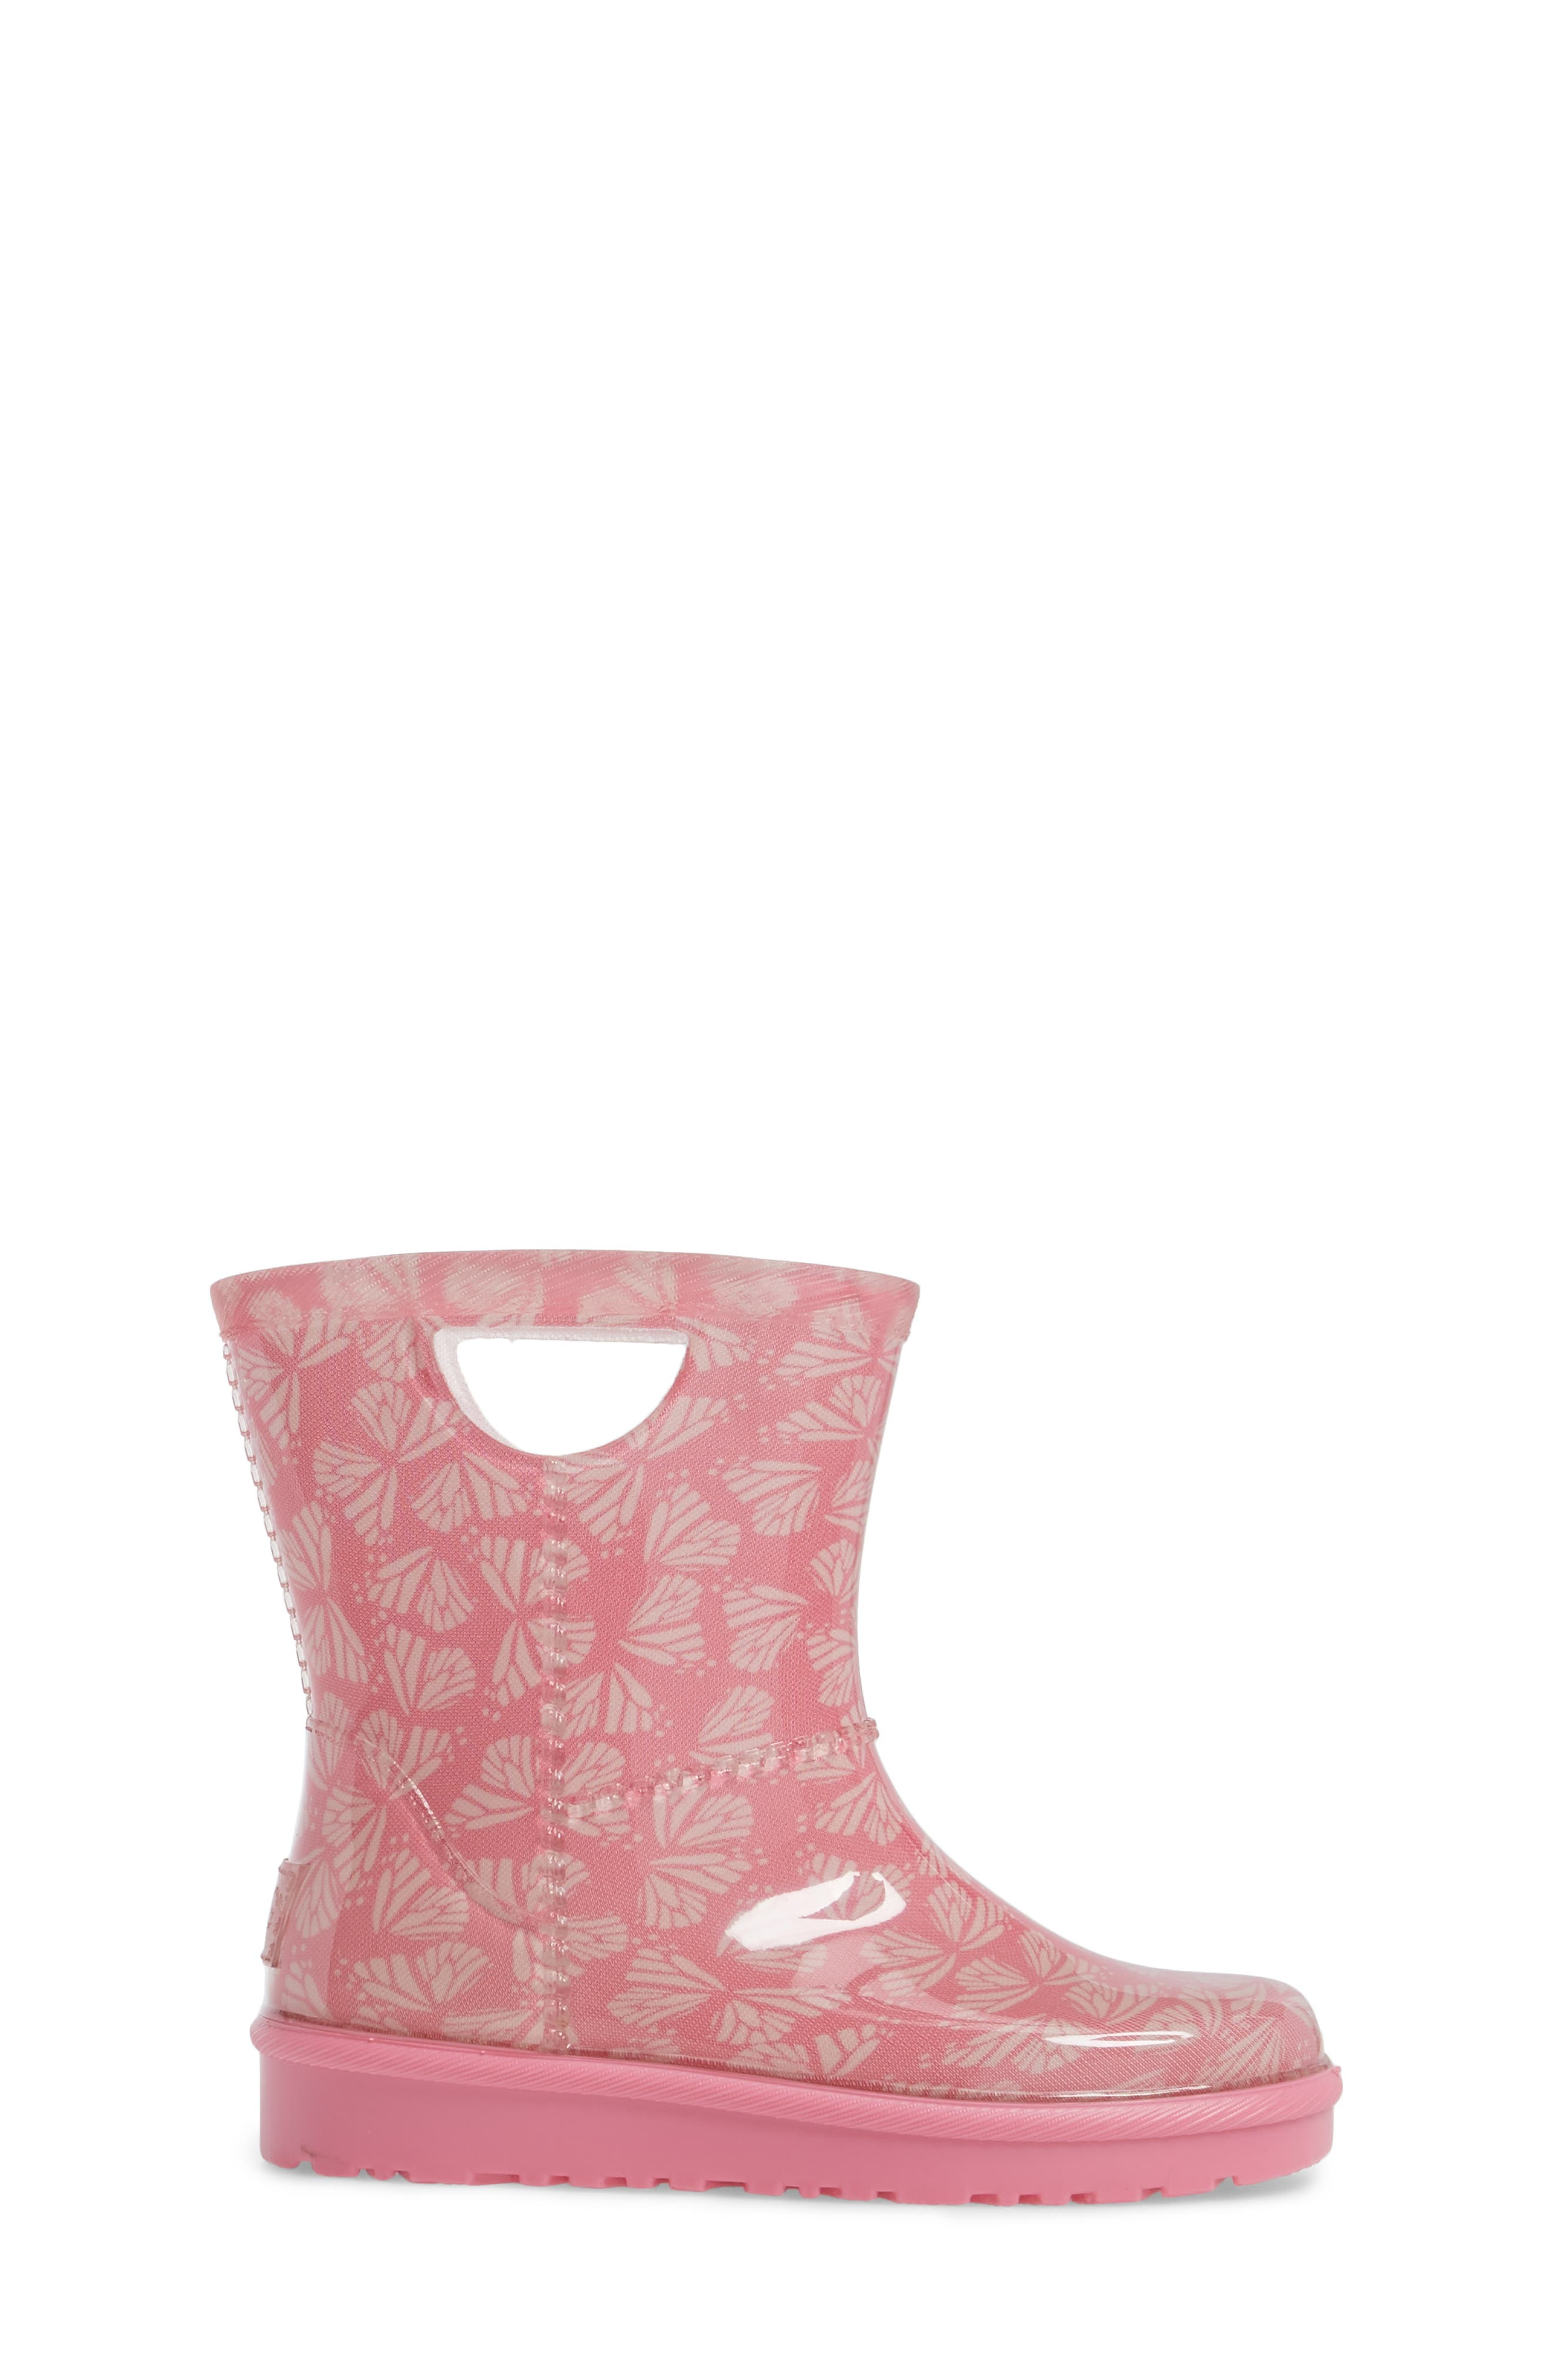 Alternate Image 3  - UGG® Rahjee Rain Boot (Walker & Toddler)